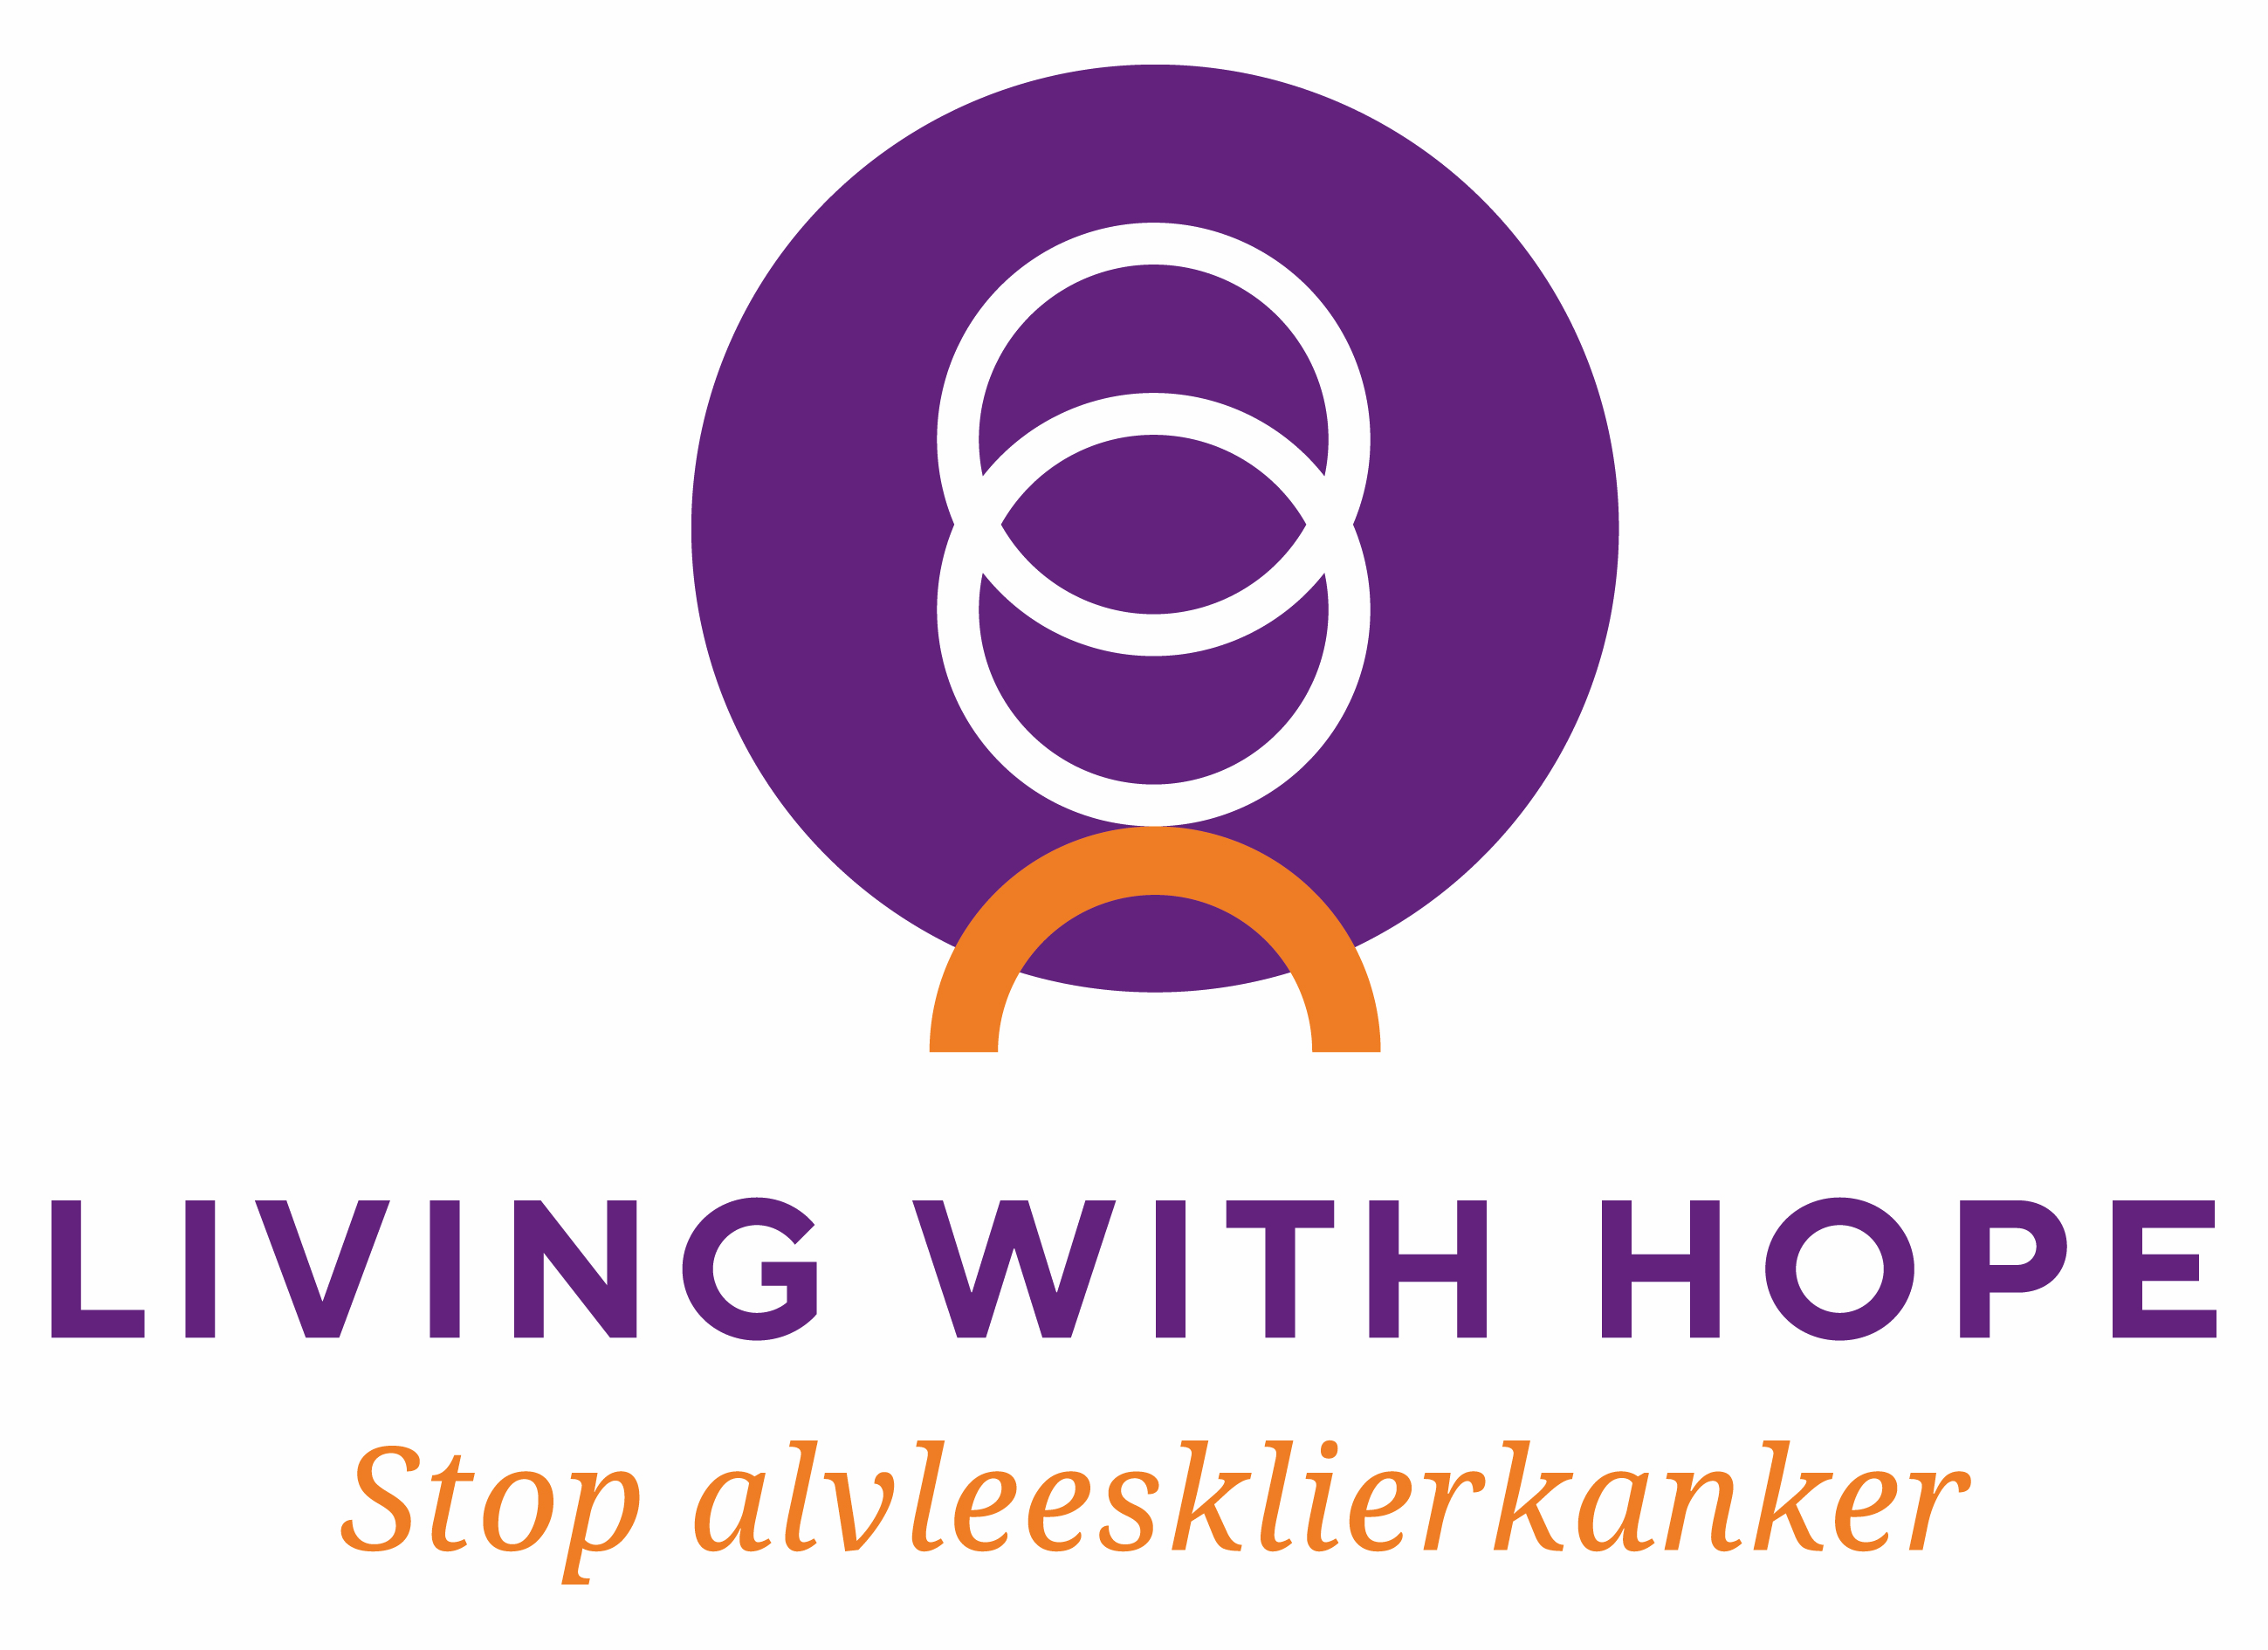 https://www.deltaplanalvleesklierkanker.nl/content/themes/mlds/dist/img/icons/dpak/logo-lwh.png